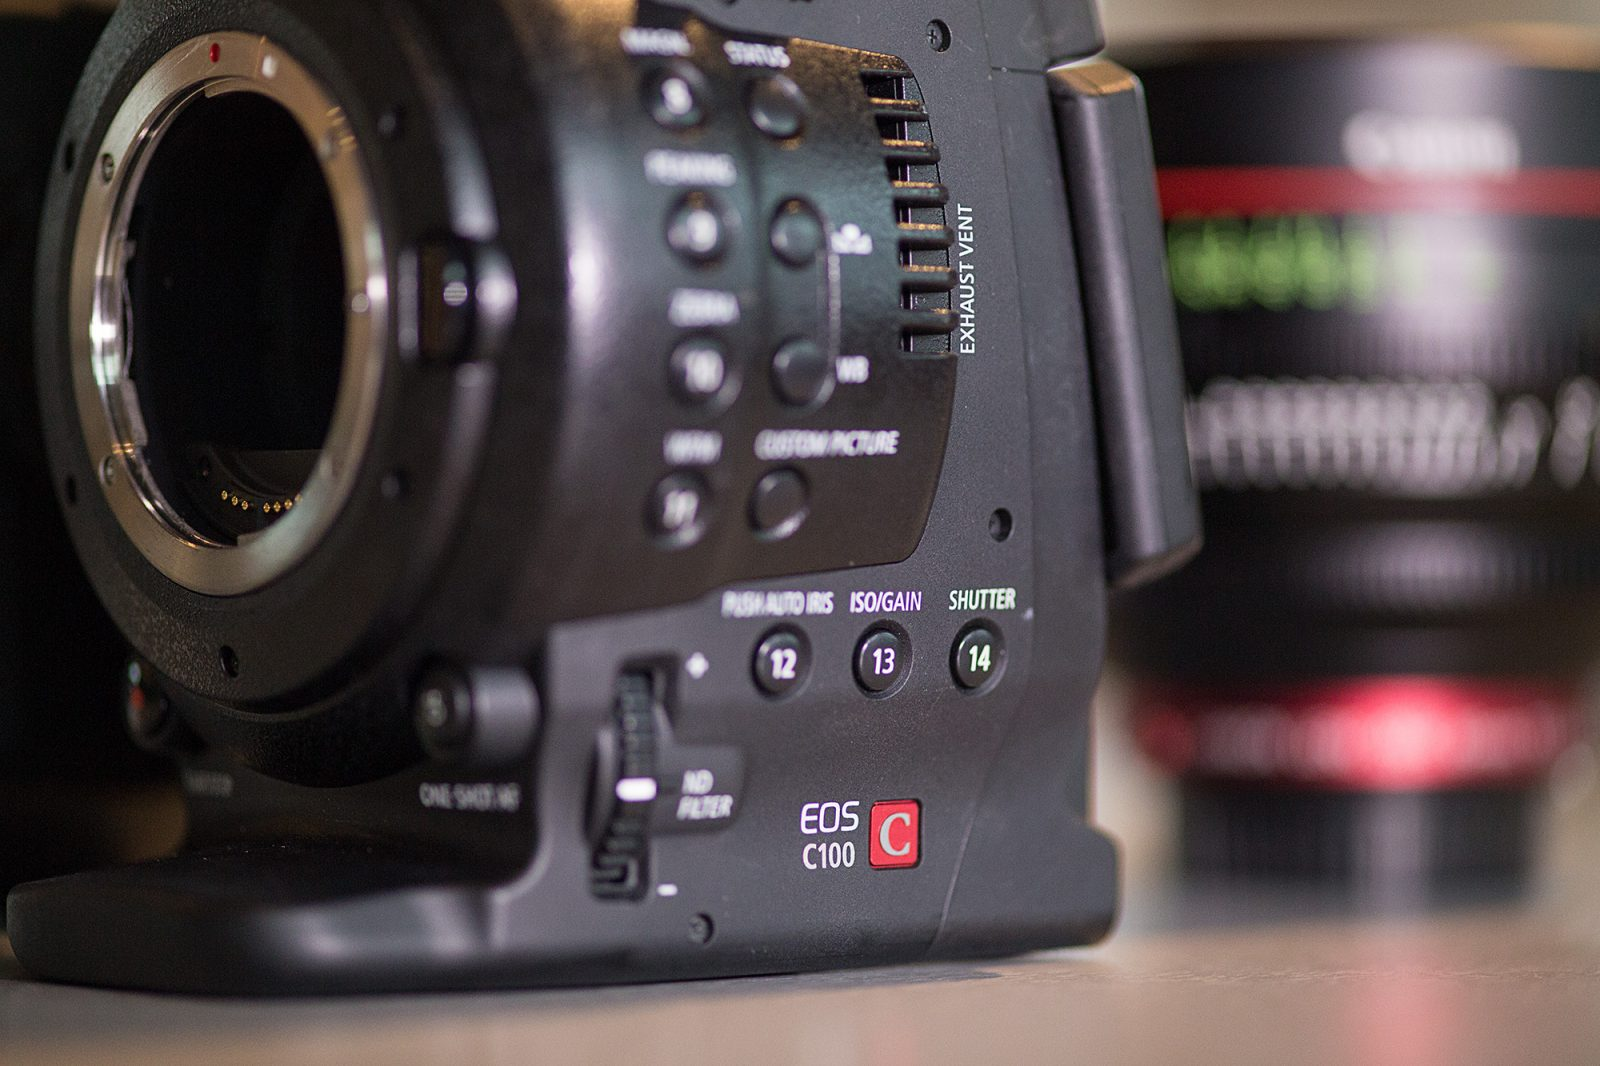 Canon C100 Dual Pixel Upgrade: What to Know – Pictureline